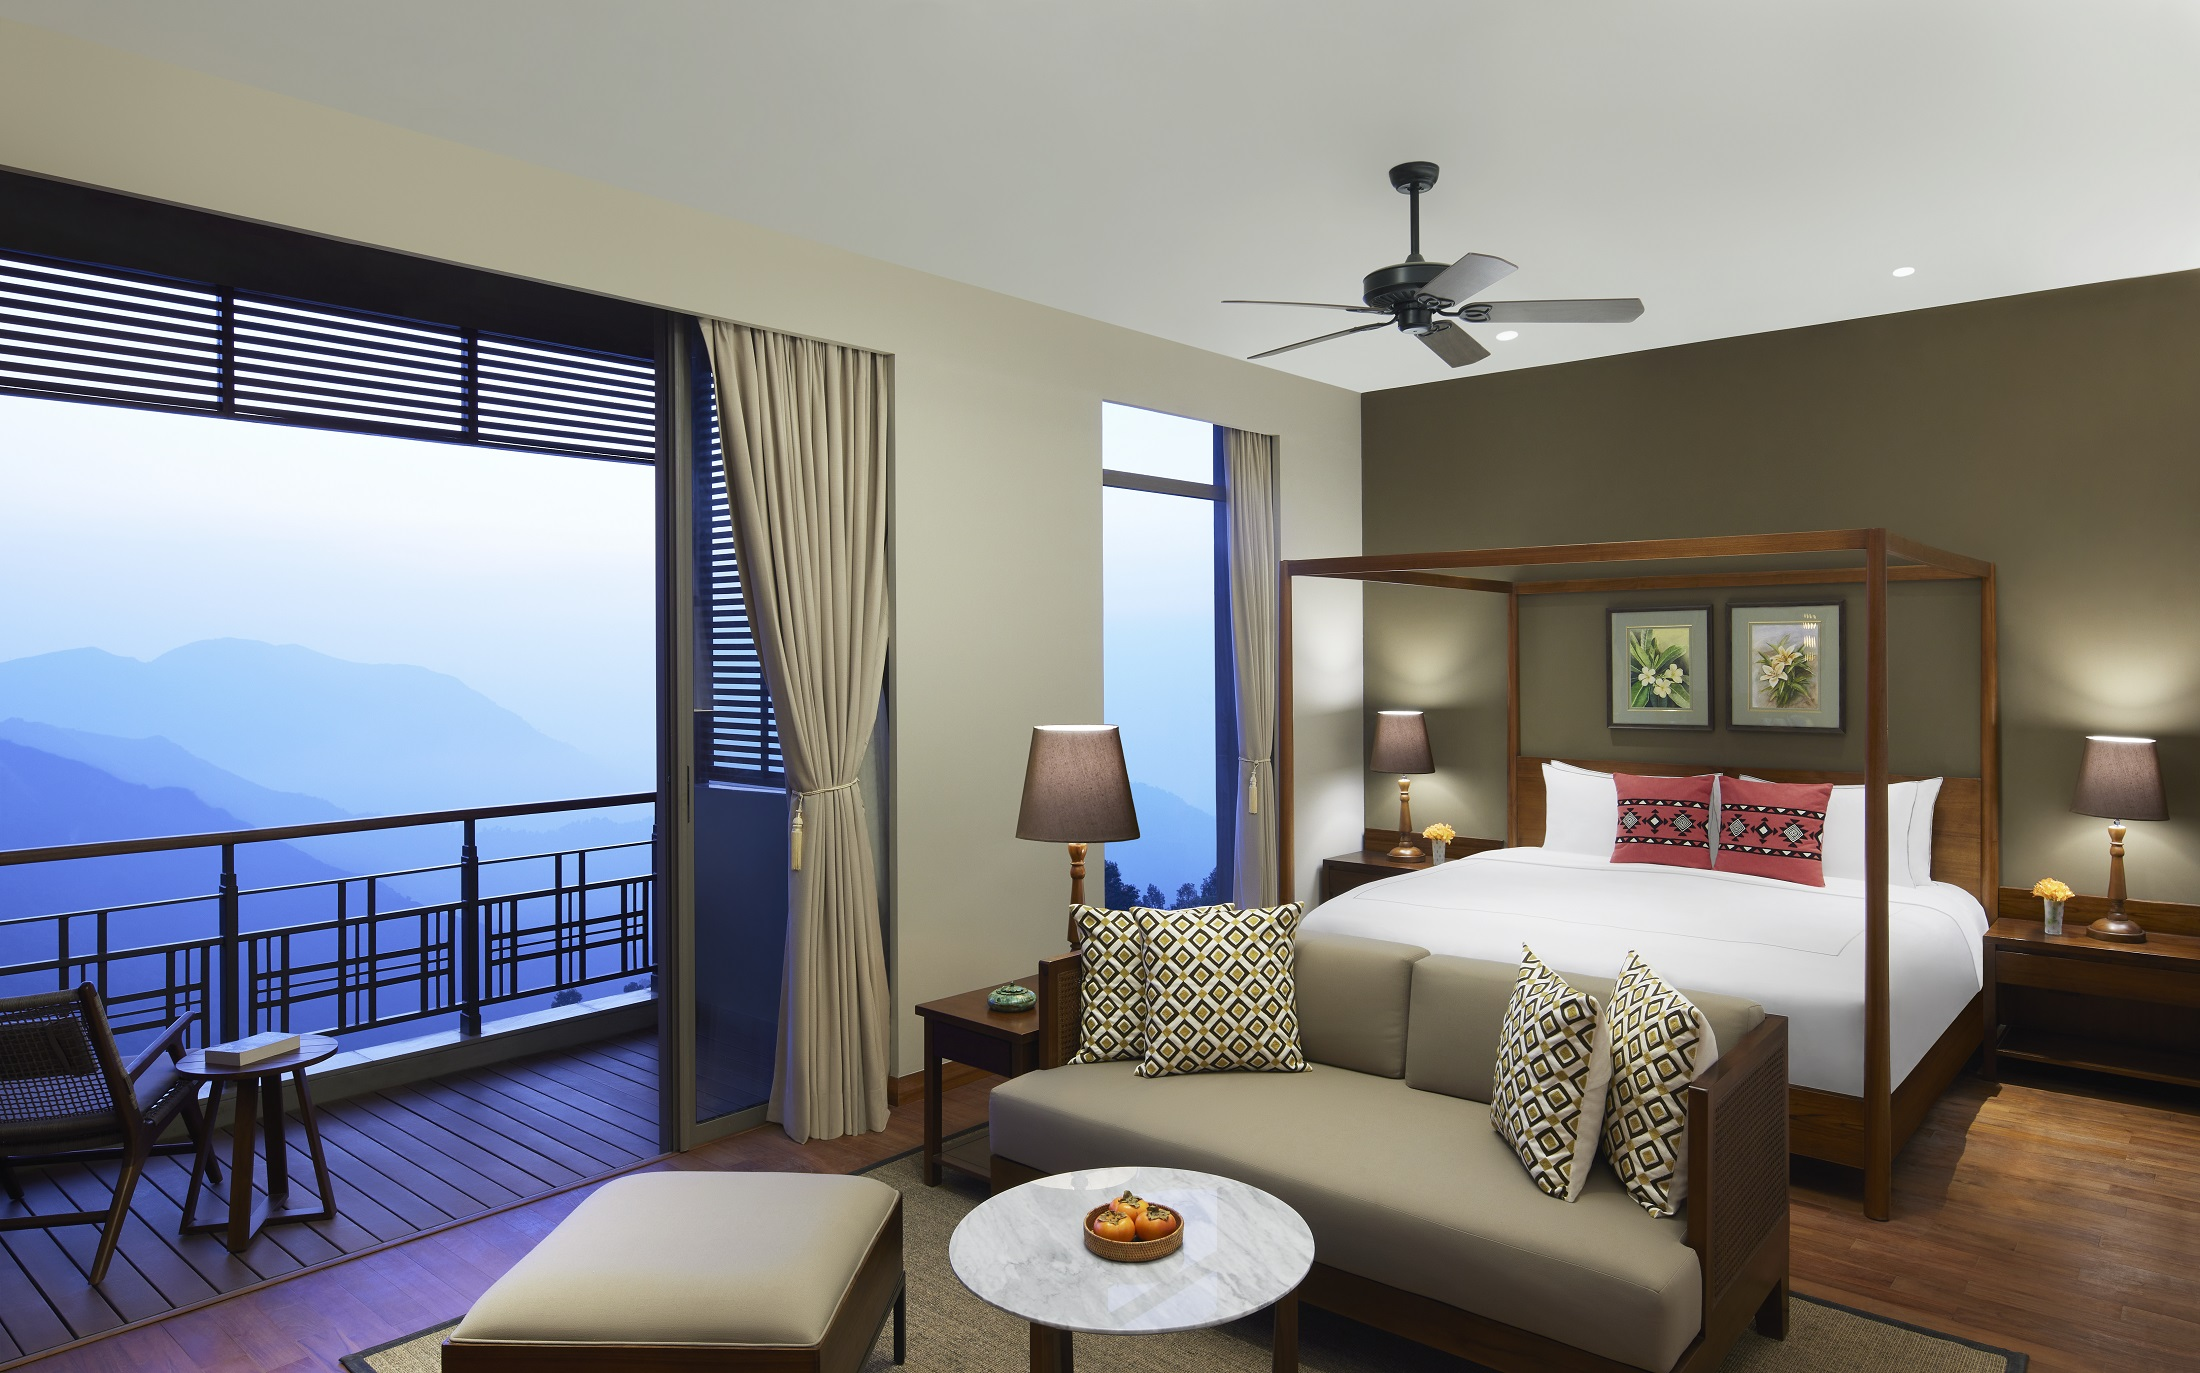 TAJ CHIA KUTIR RESORT & SPA DEBUTS IN DARJEELING, WEST BENGAL